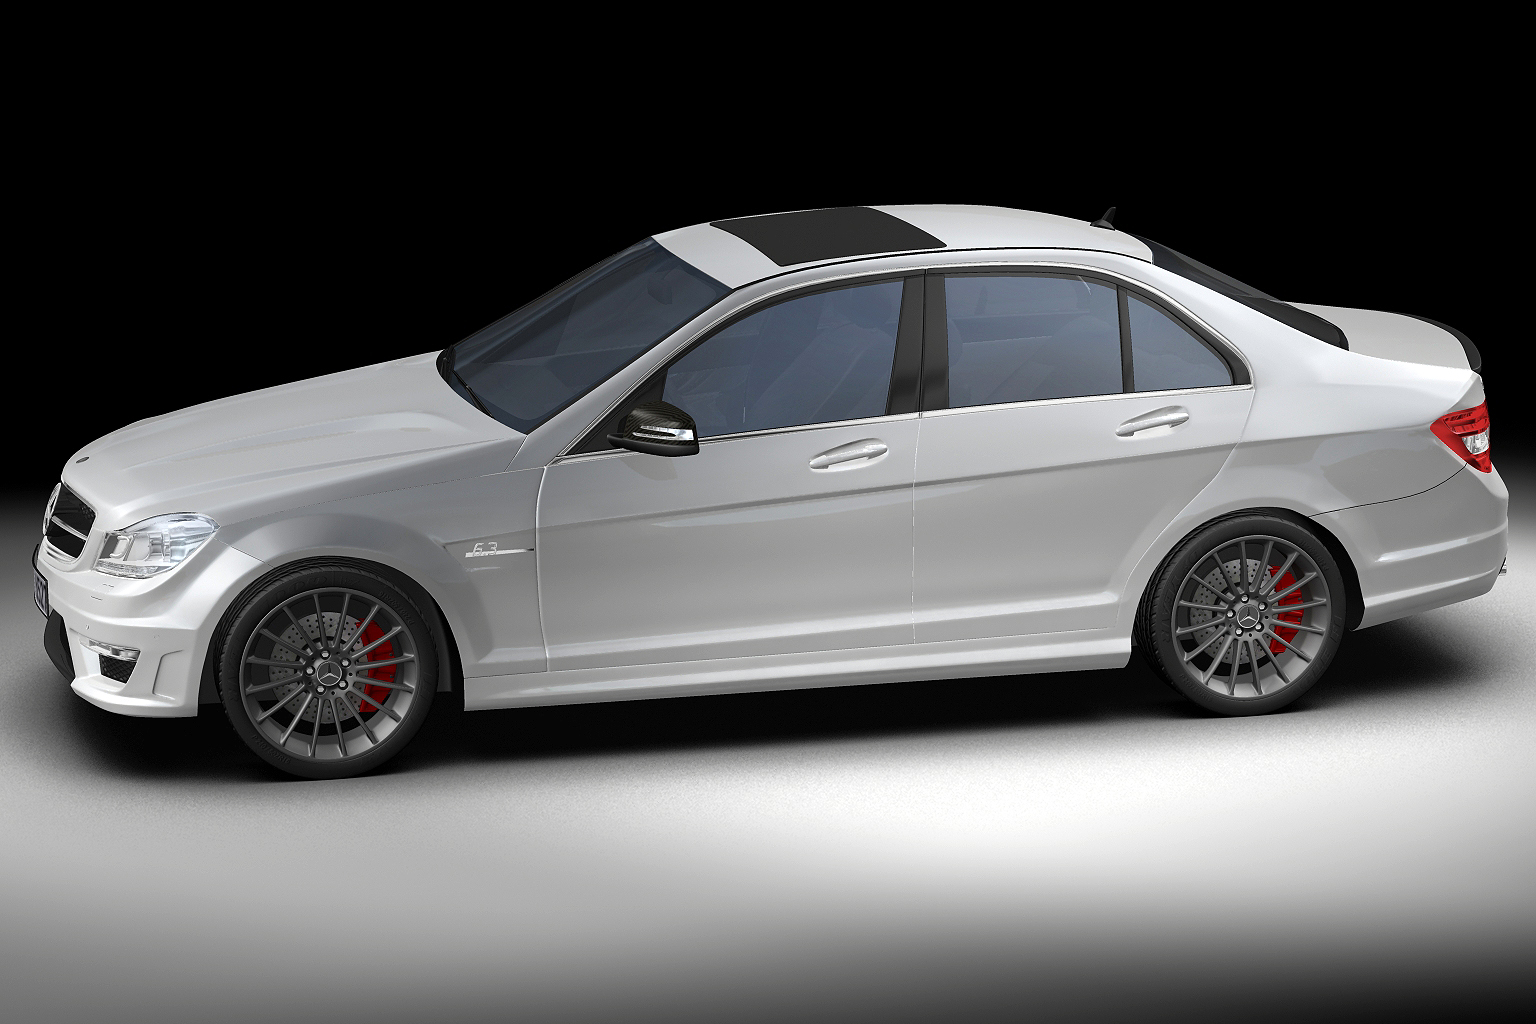 2012 mercedes benz c63 amg 3d model buy 2012 mercedes for Mercedes benz c63 amg